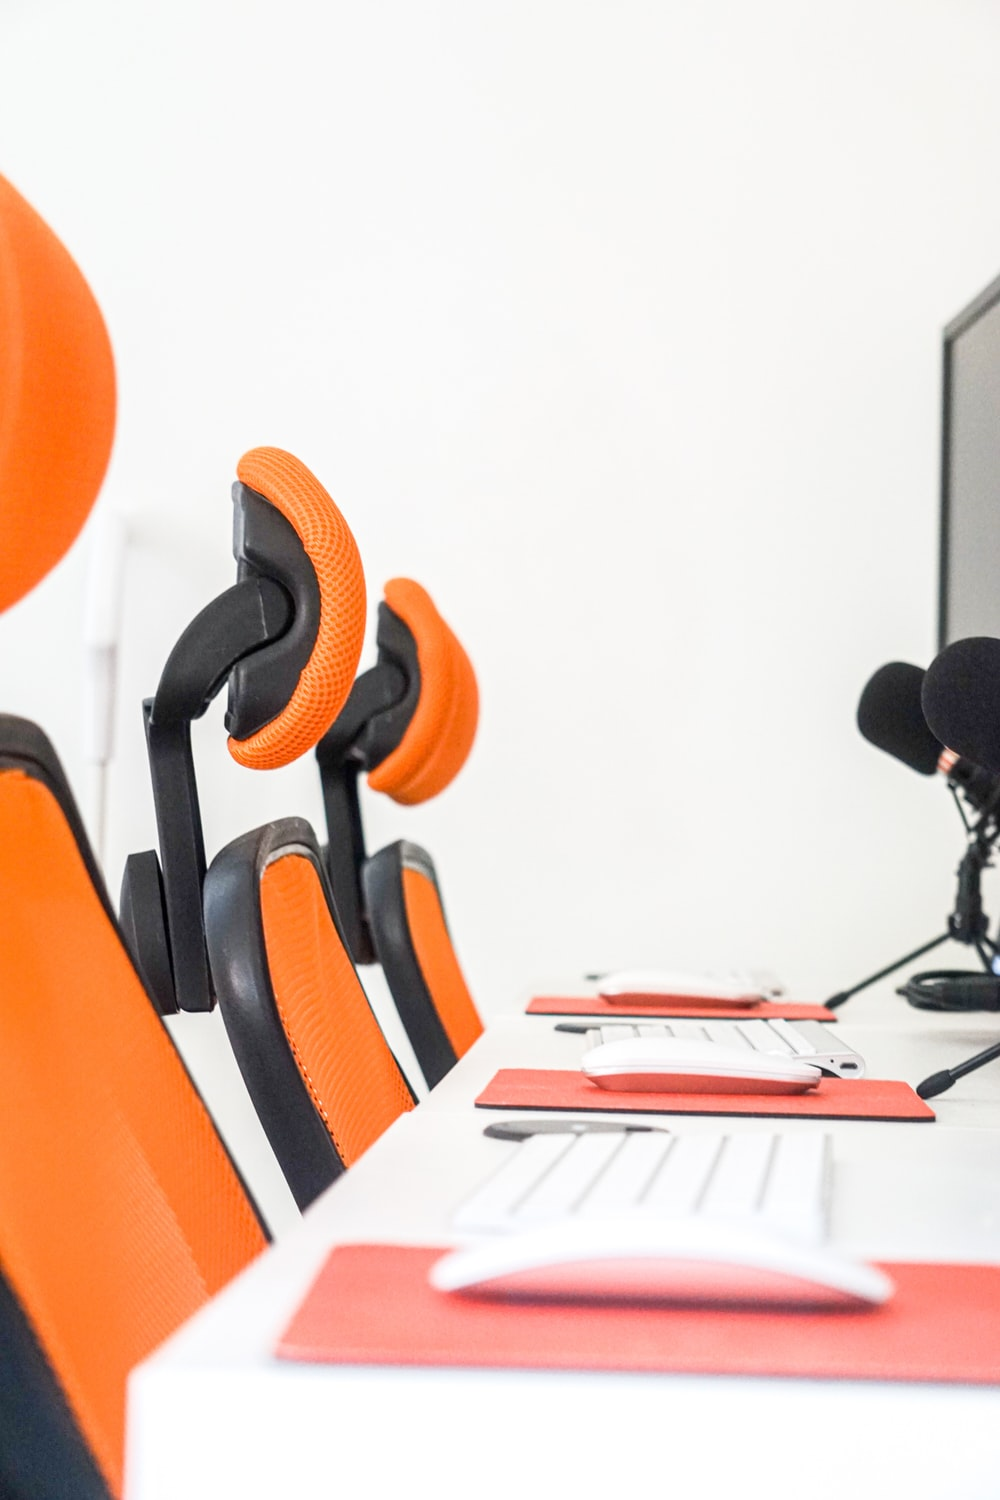 black and orange office rolling chair